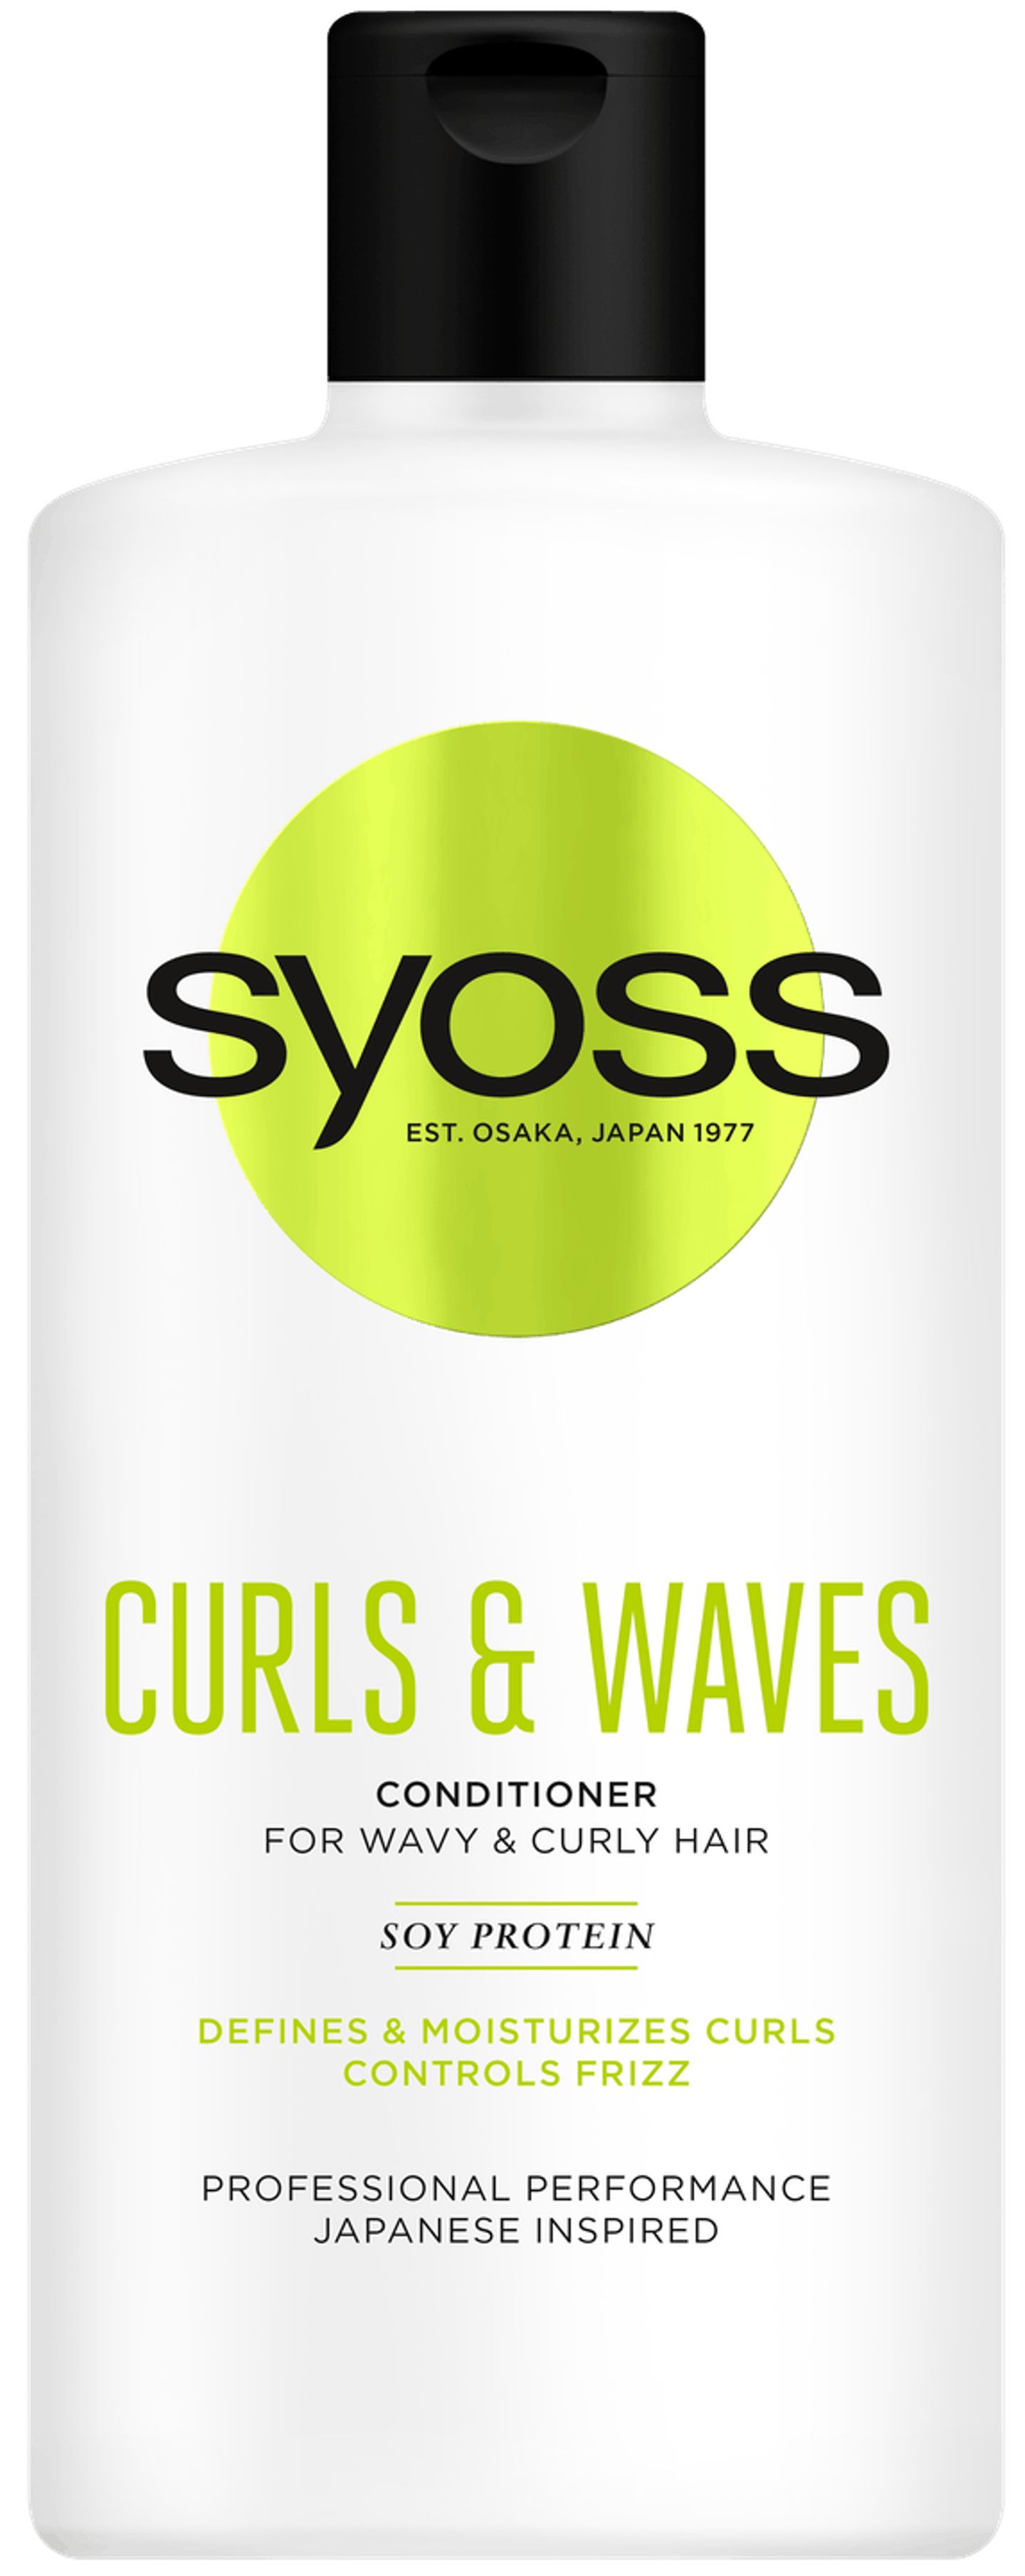 Syoss Curls & Waves regenerator